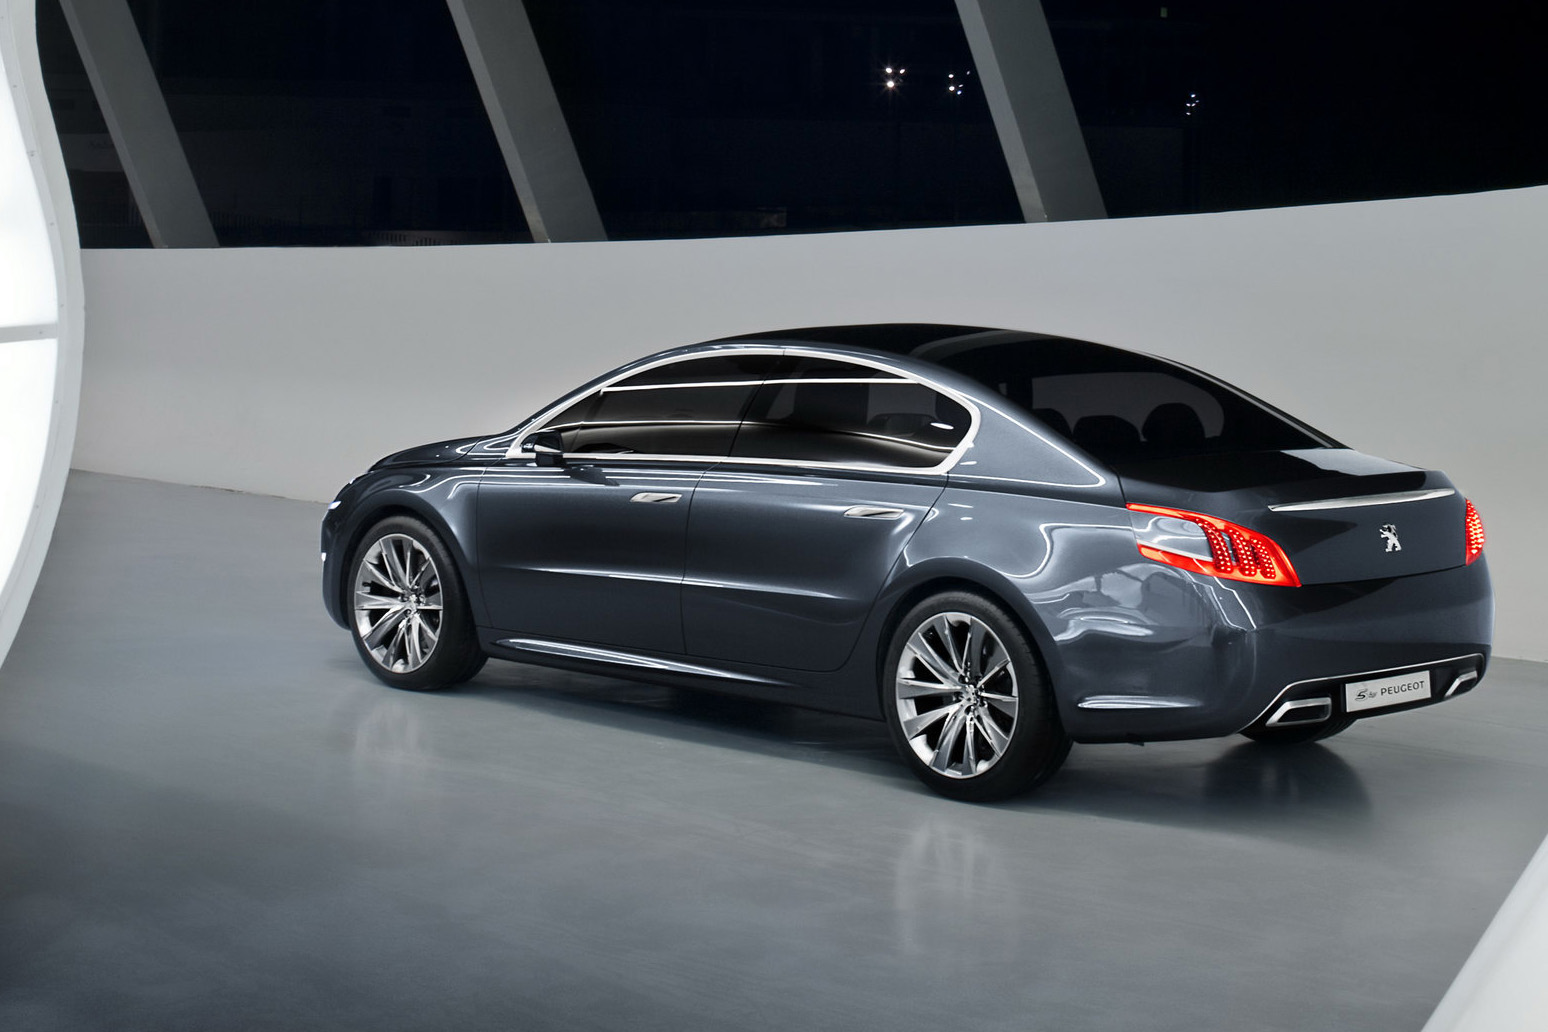 2014 peugeot 508 pictures information and specs auto for Photo peugeot 508